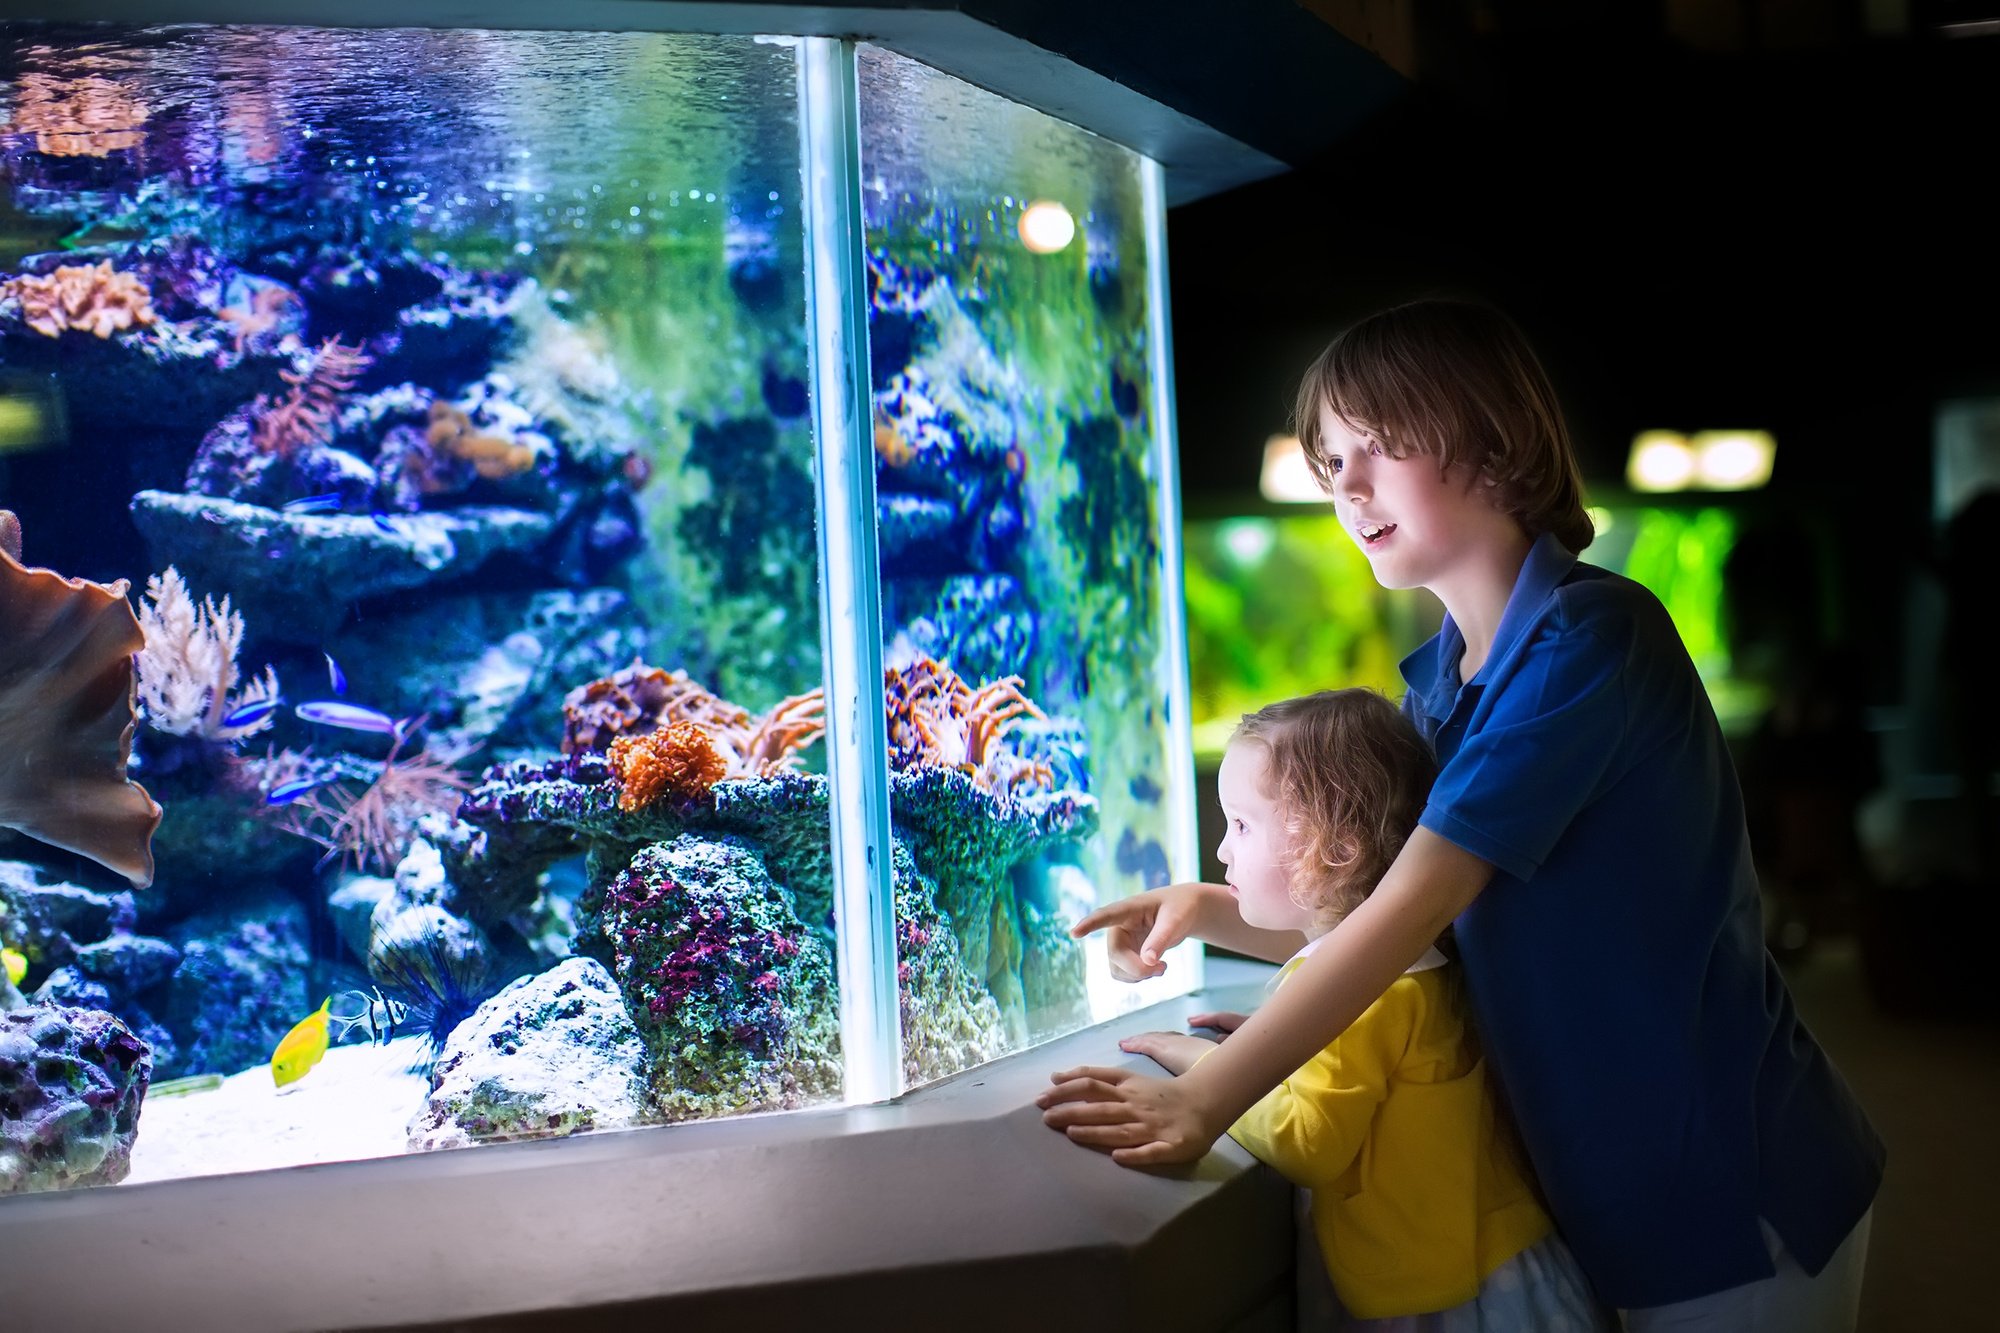 8 Unique Aquarium Design Ideas Sure to Get Attention